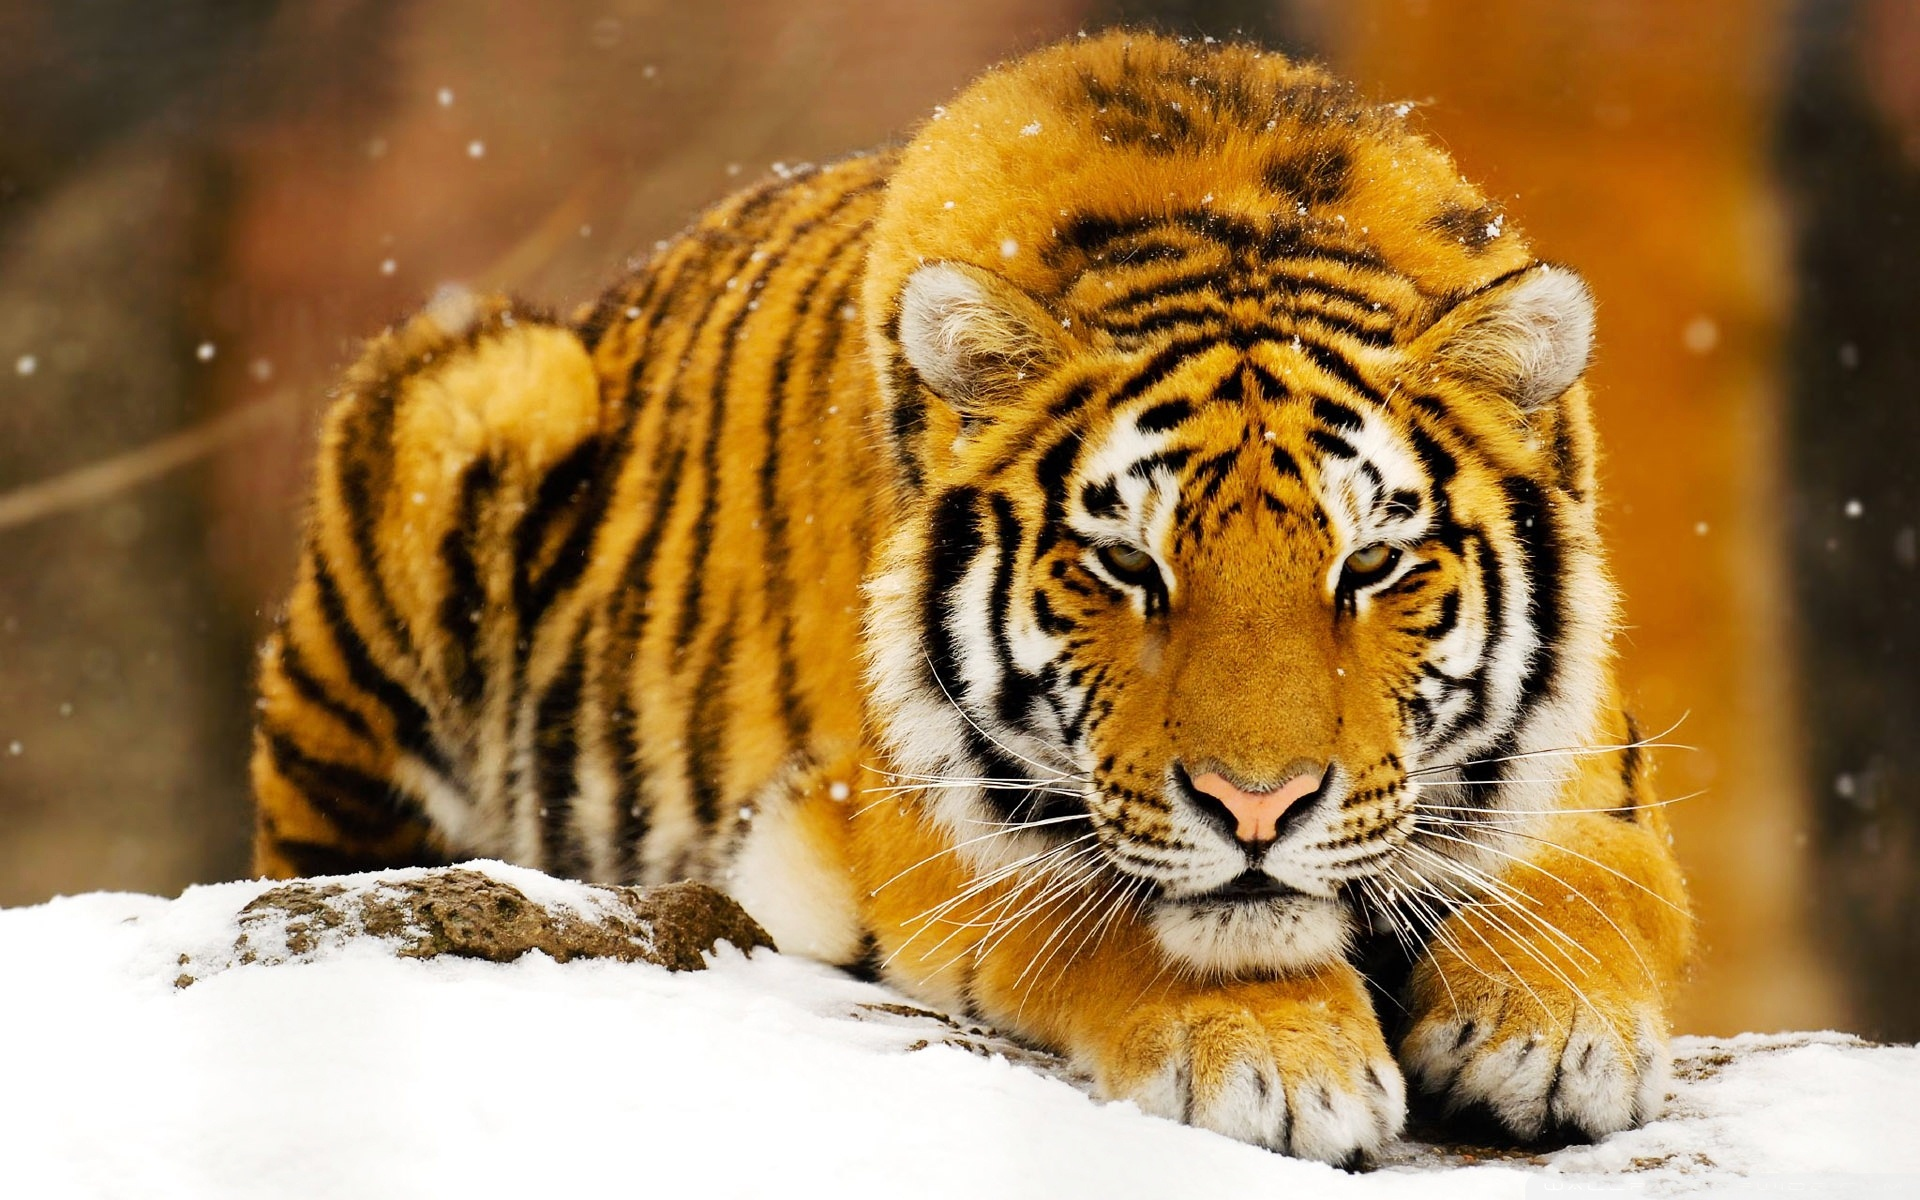 Siberian Snow Tiger 666.94 Kb